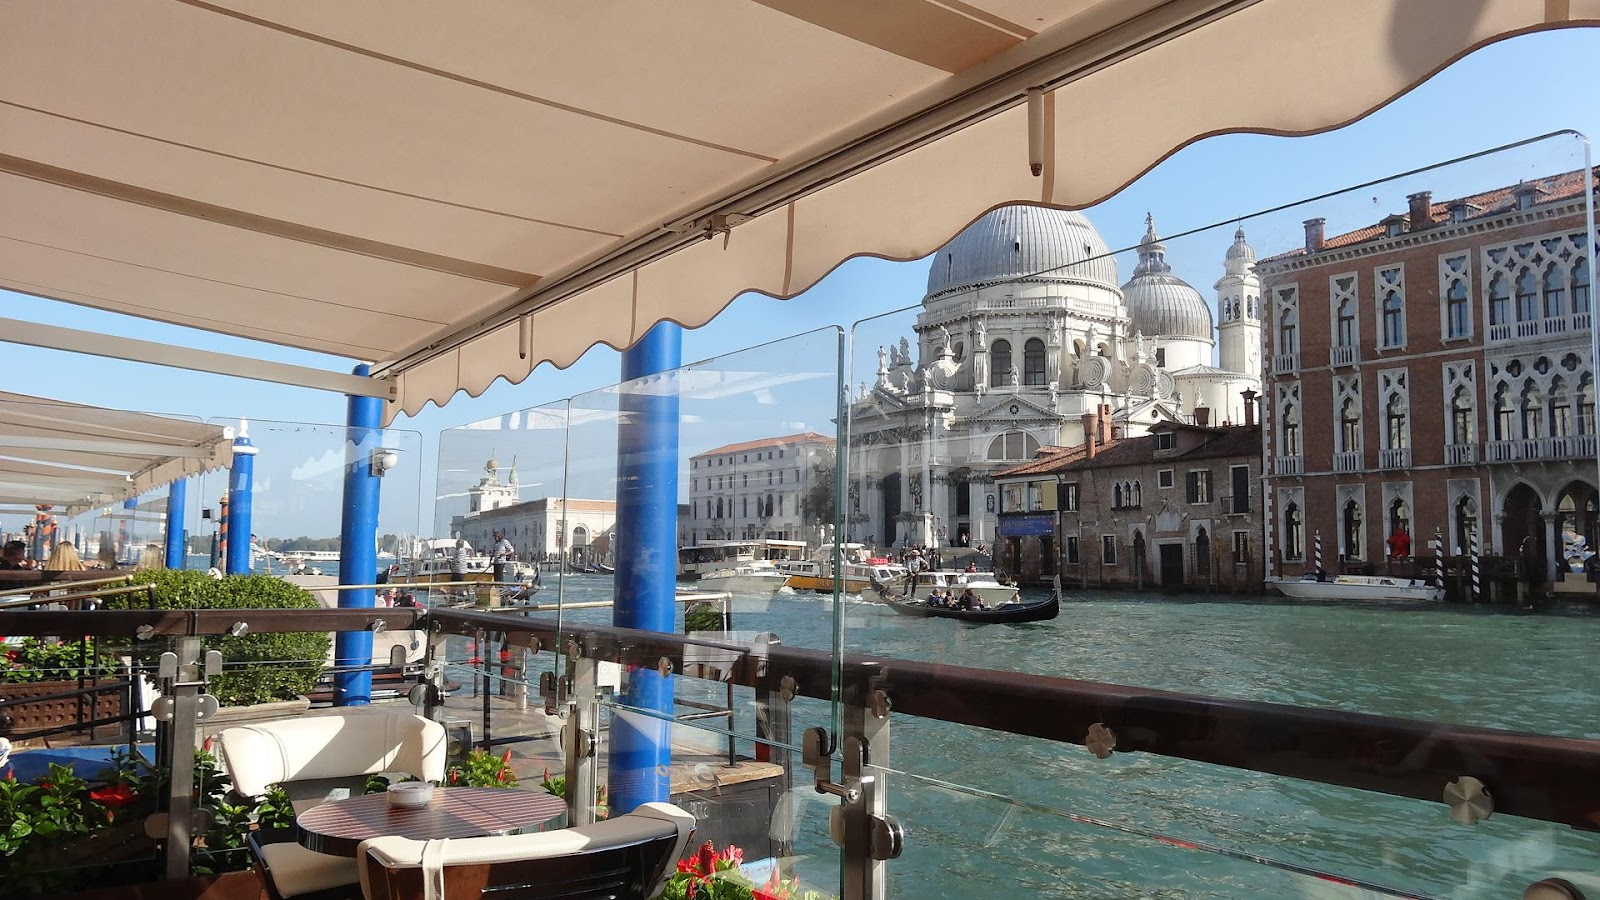 gritti palace terrace restaurant, outdoor dining with a view of canal grande. Sunny day, no tourists and canal full of boats. Be sure to see it on an Italy road trip